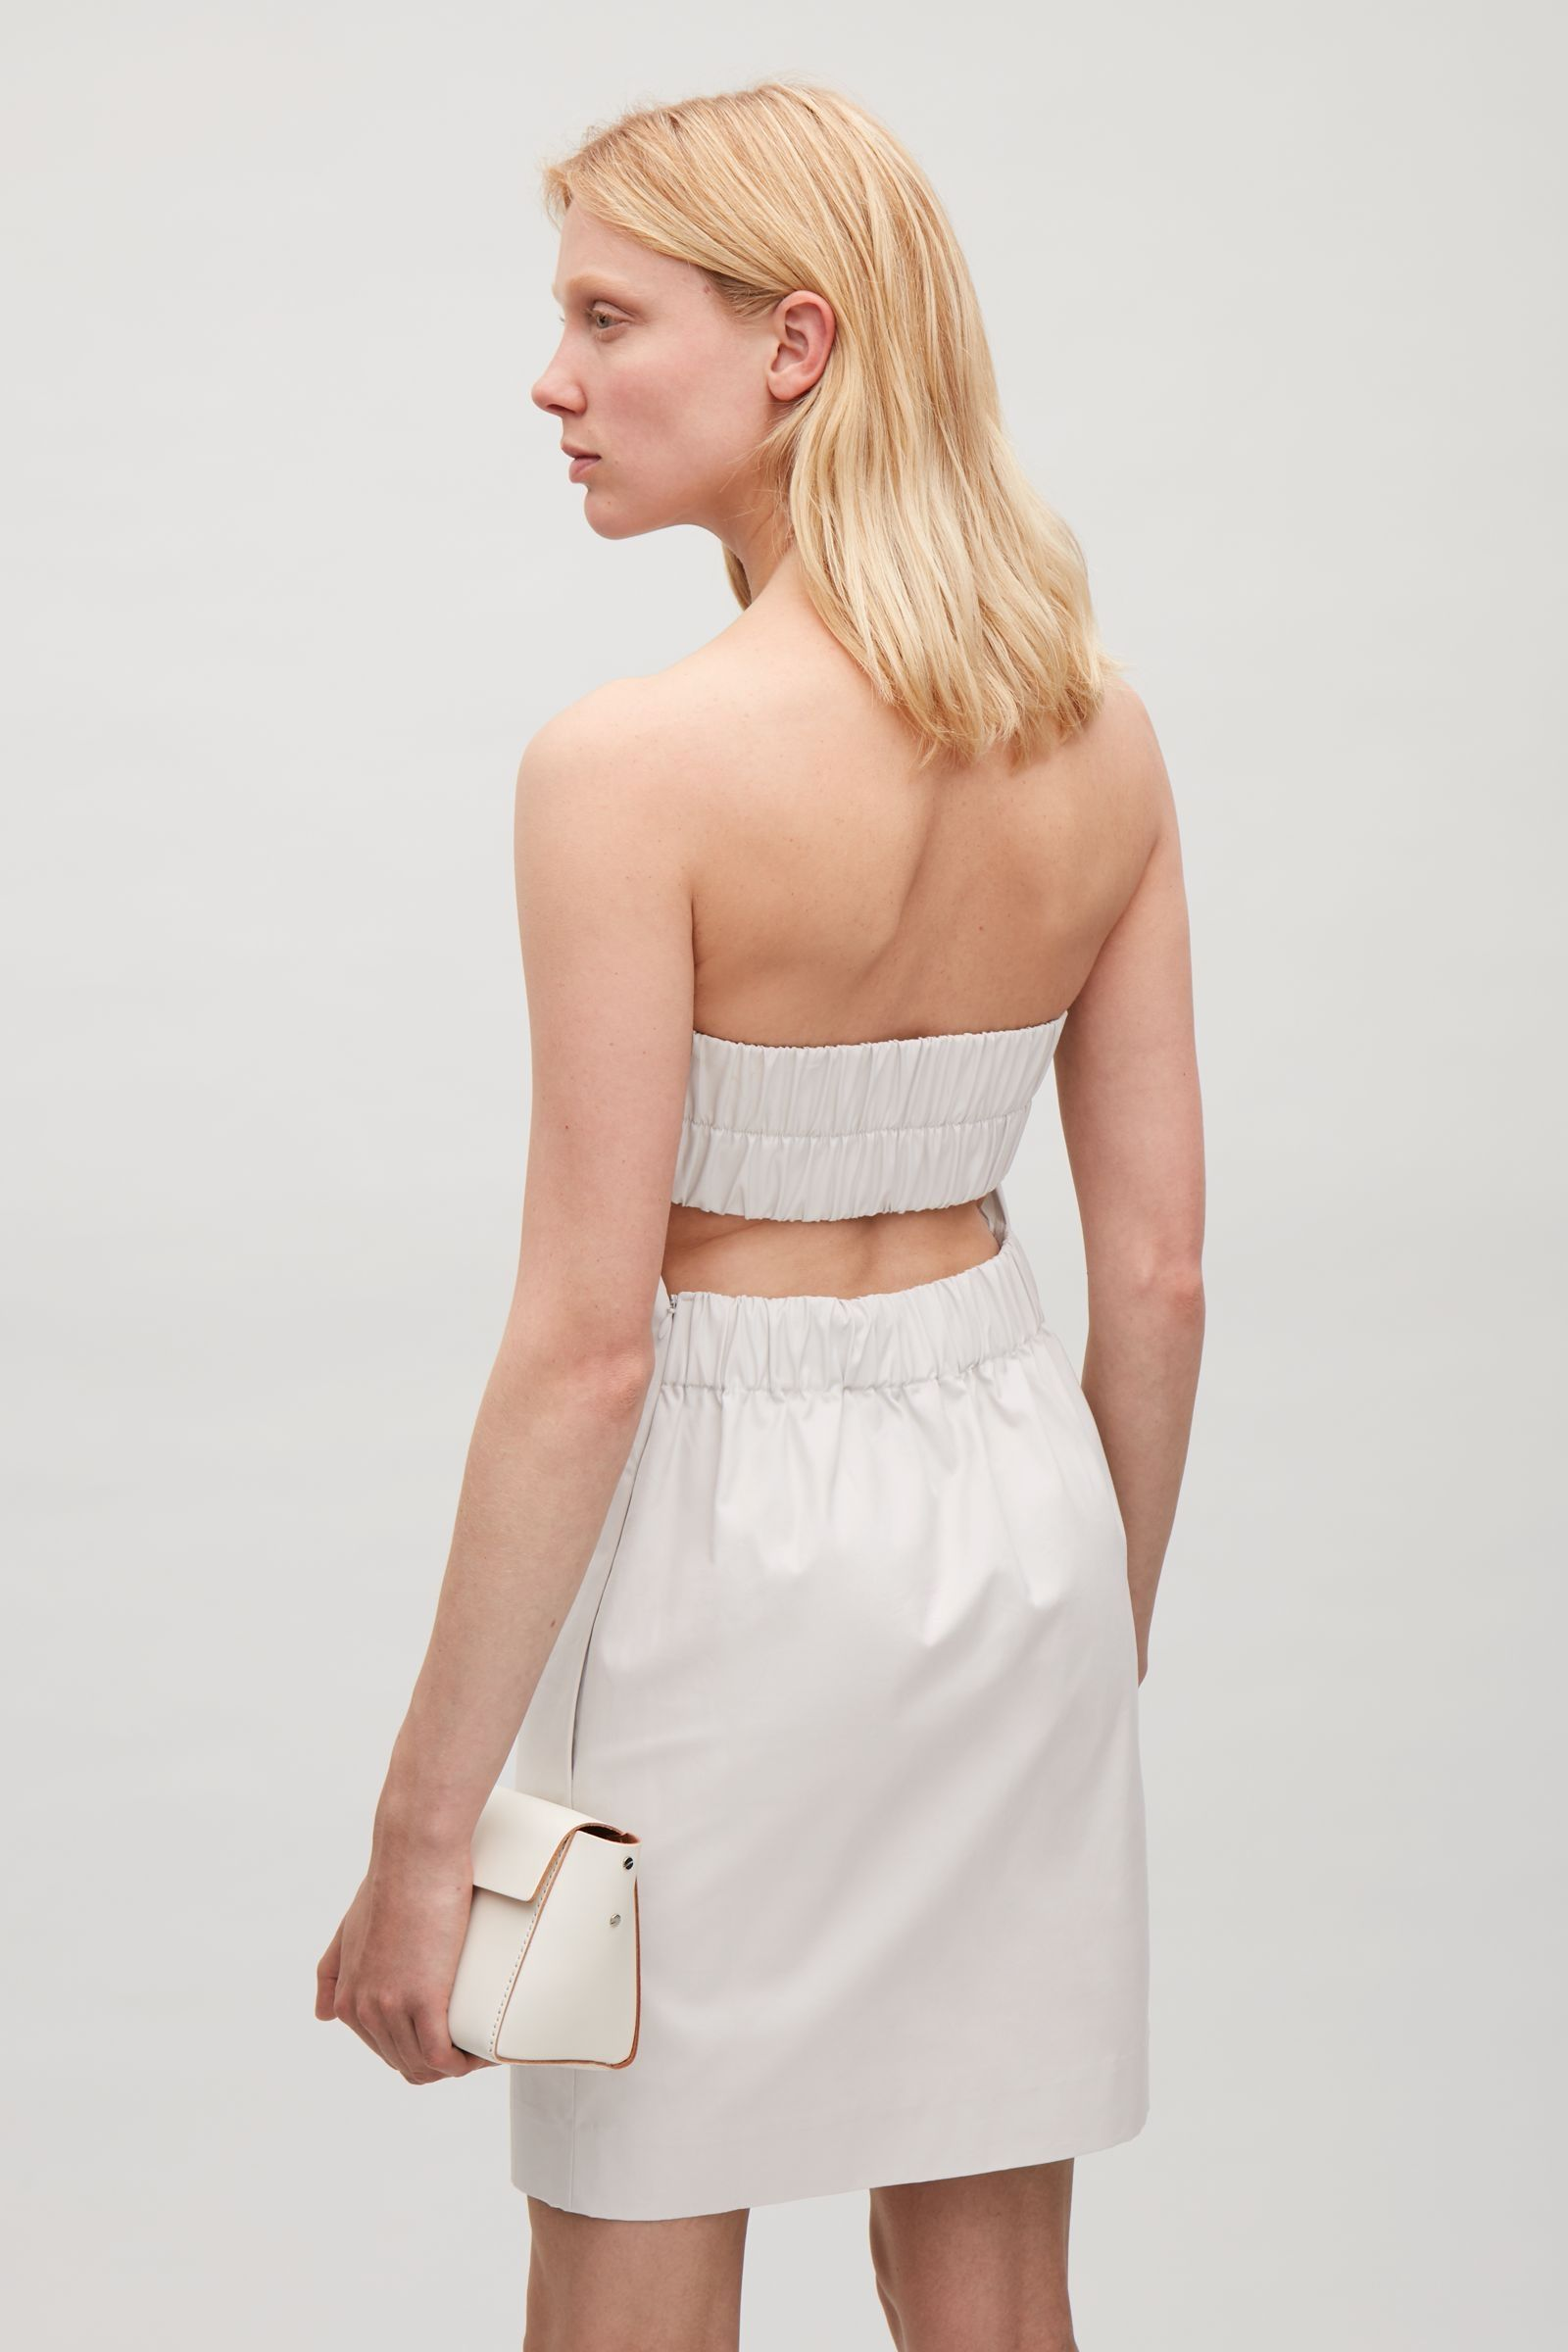 Fashion style Back Open strapless dress pictures for girls